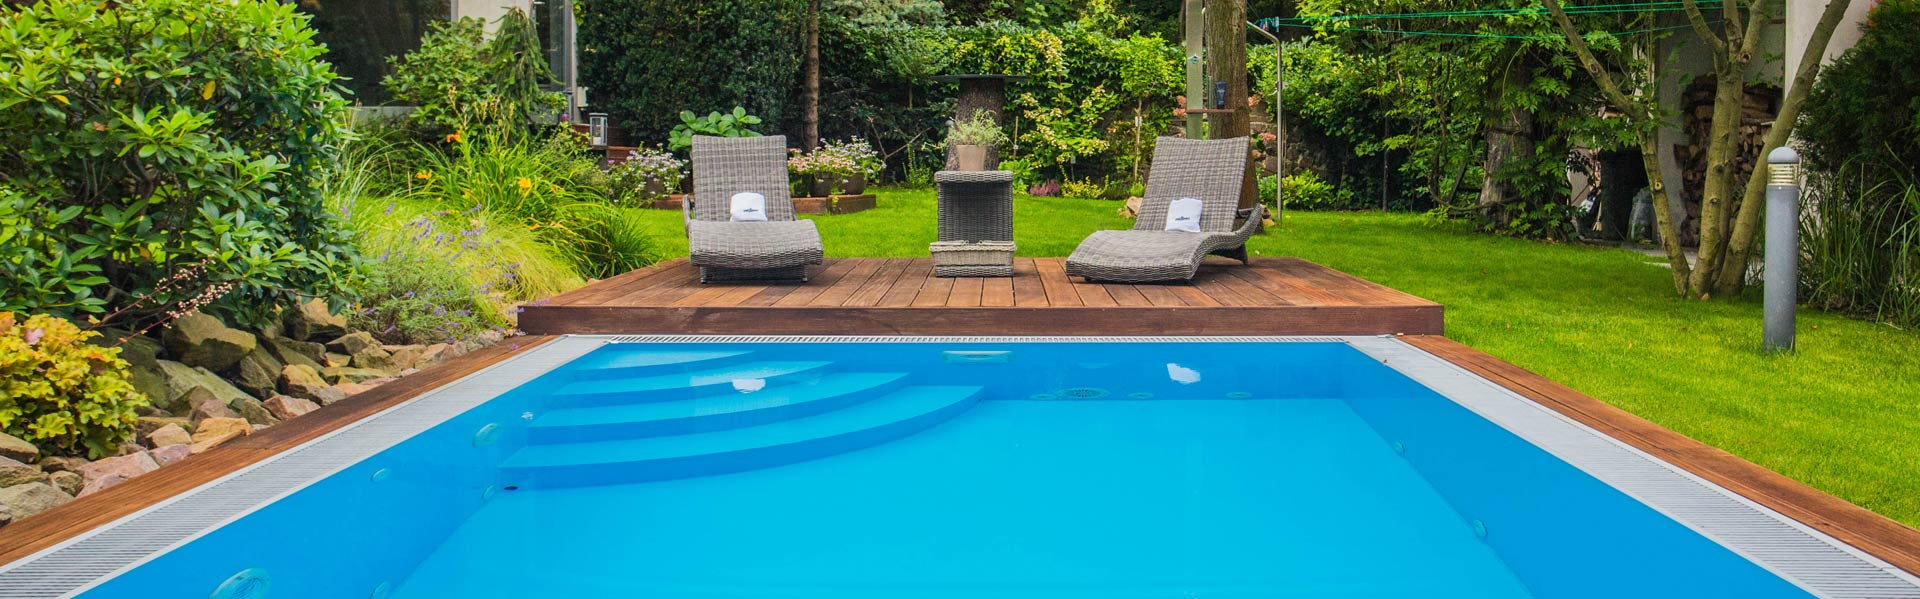 Swimming Pool Umrandung overflow commercial and hotel pools diamant unipool s r o